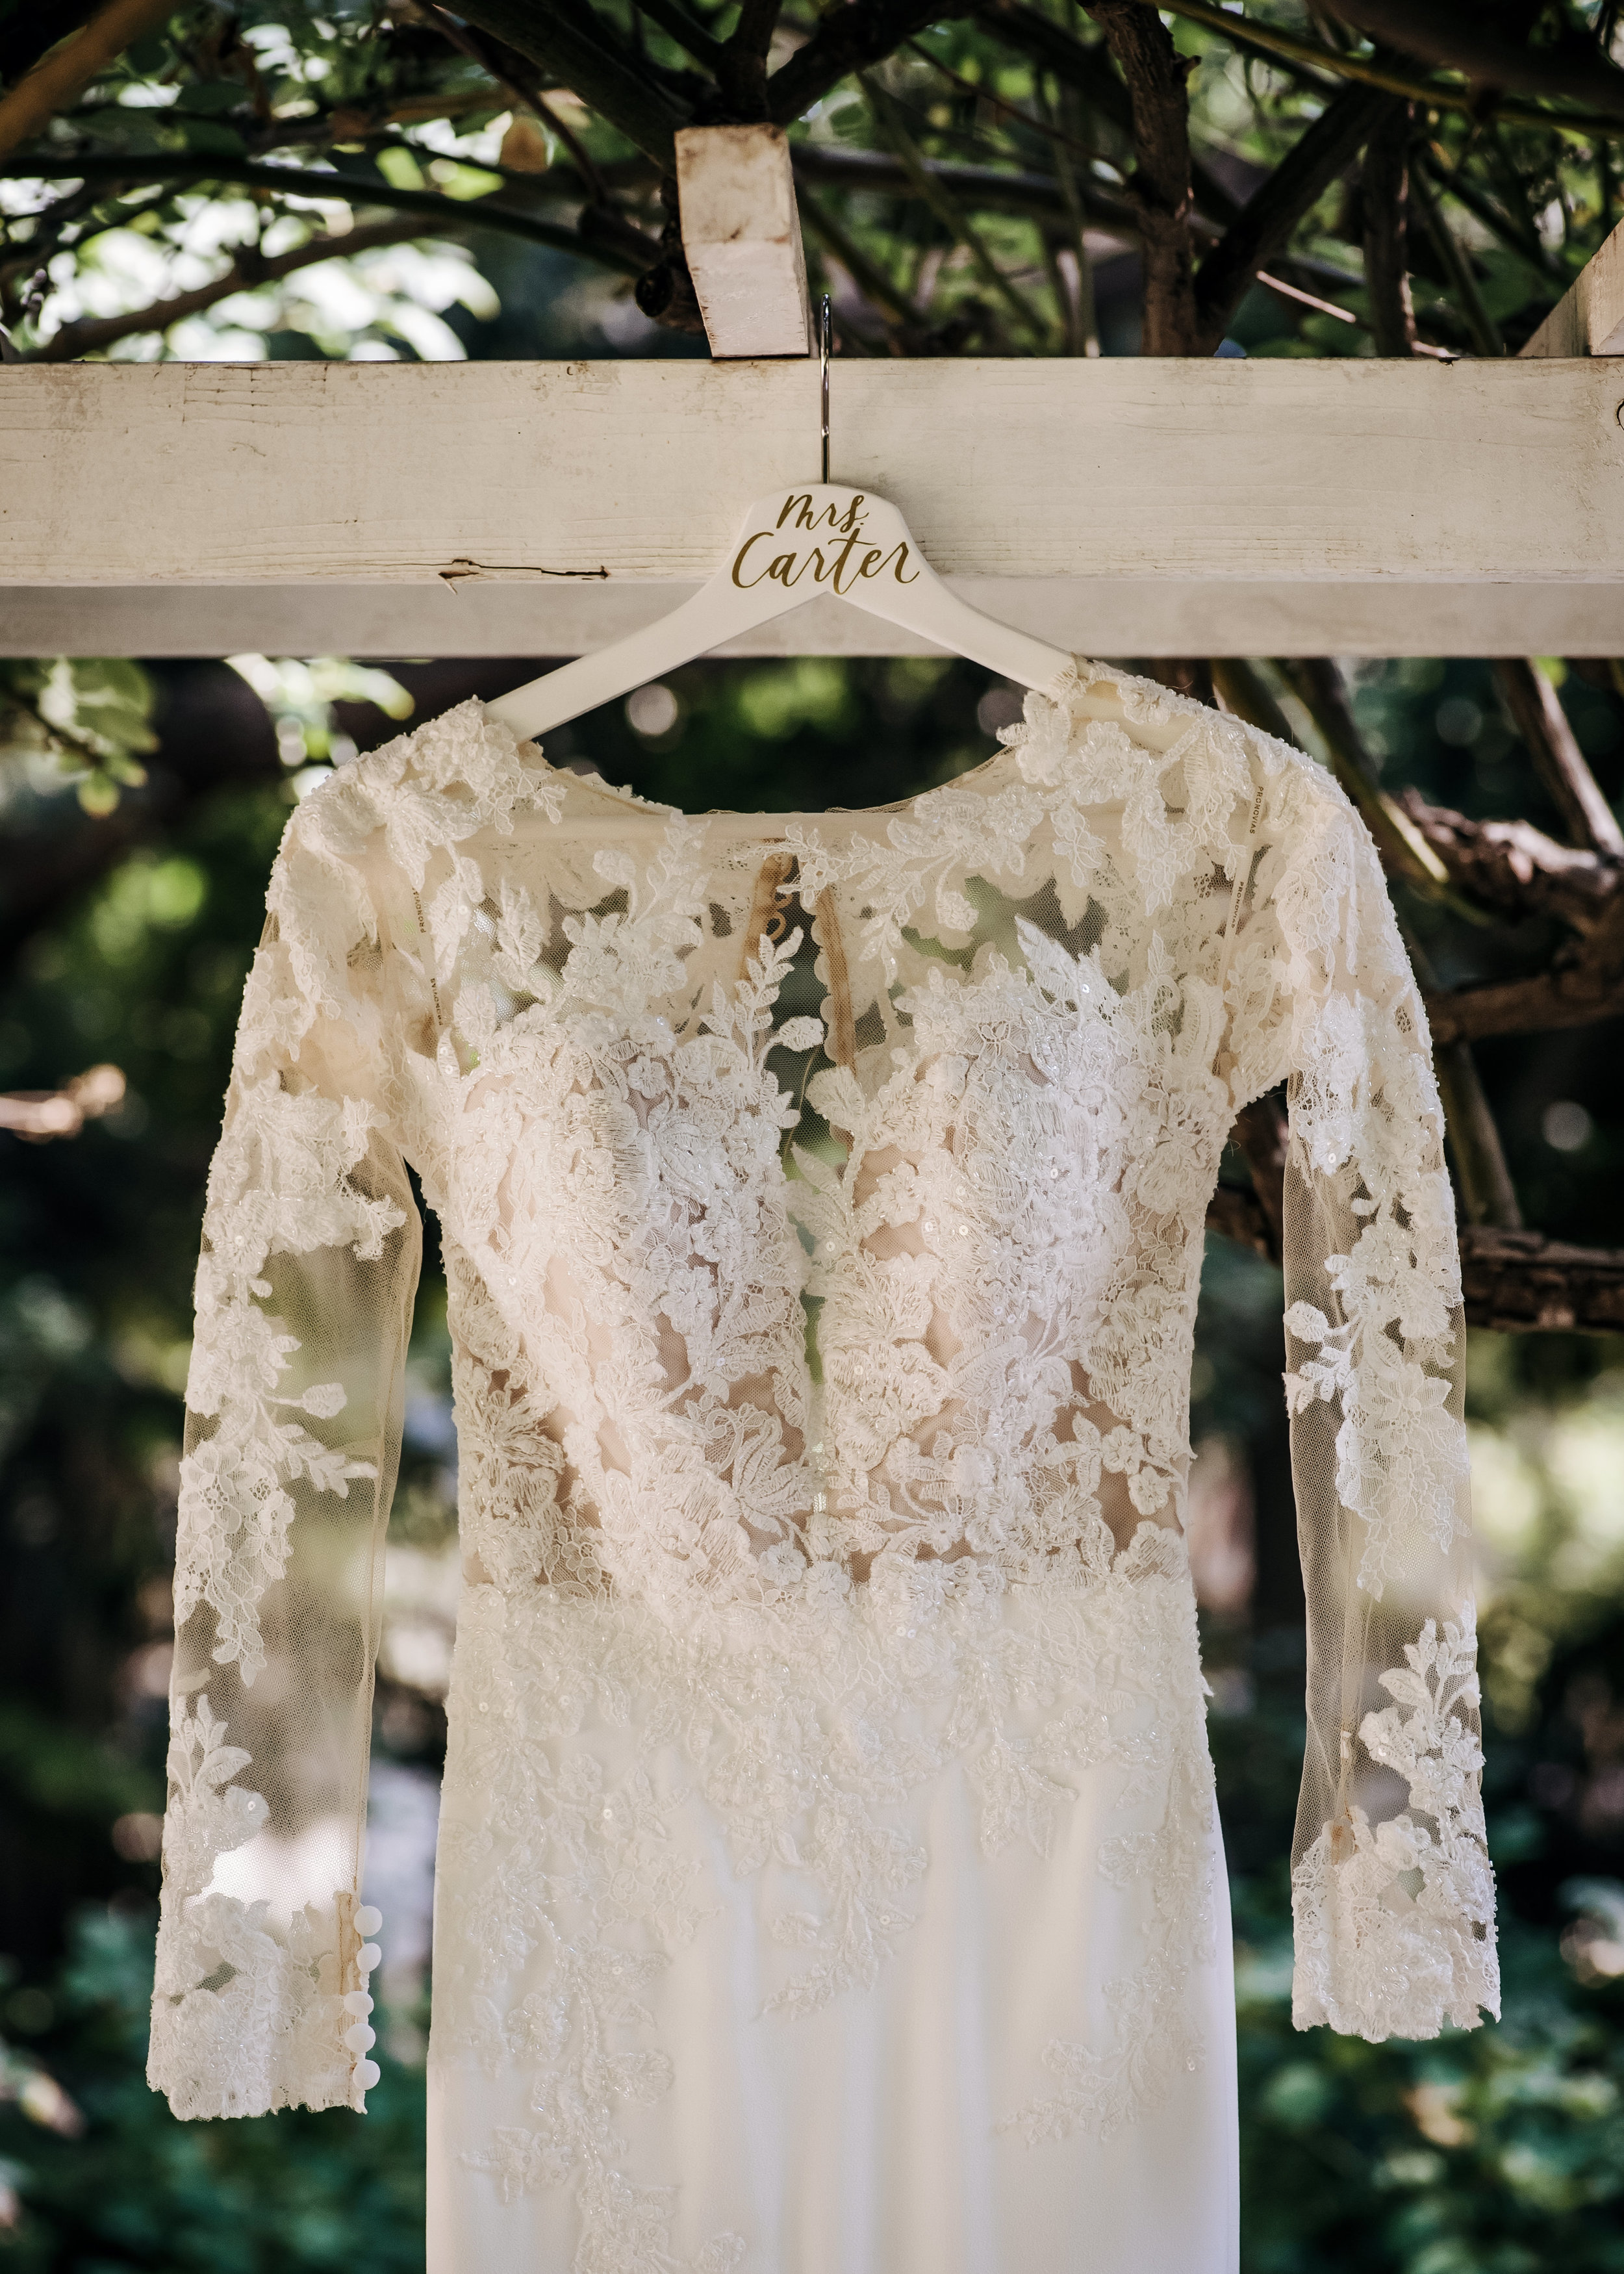 Turchin_20180825_Austinae-Brent-Wedding_049.jpg